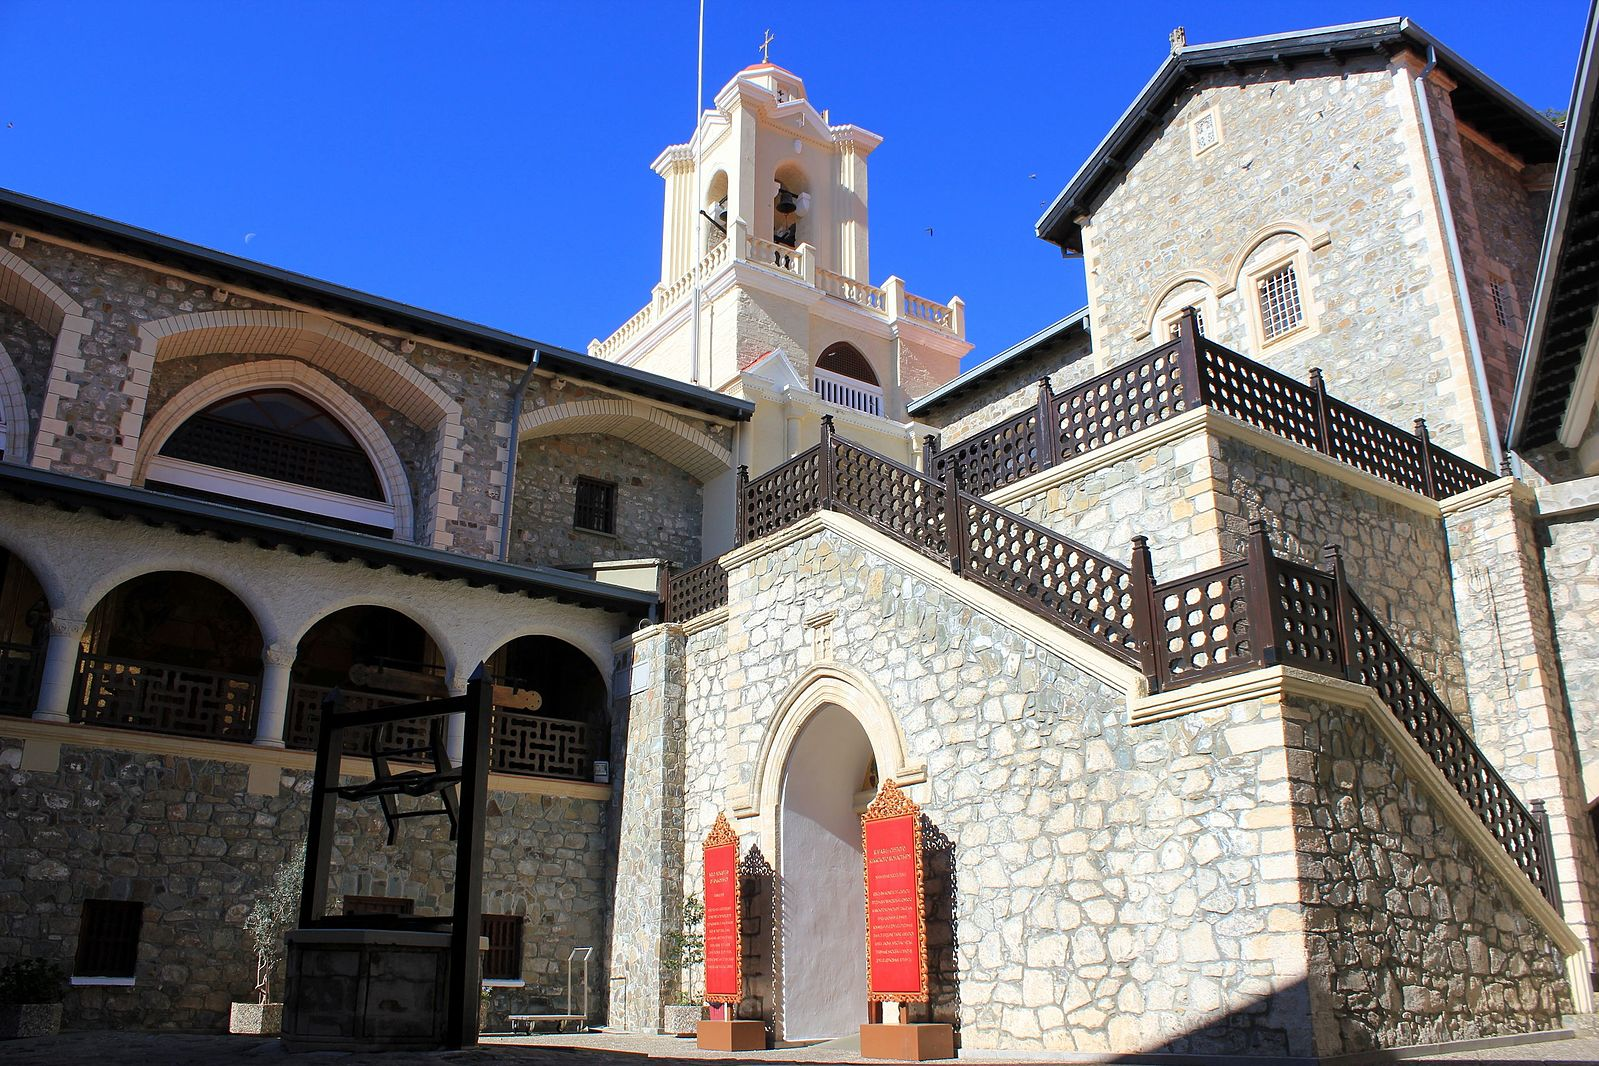 kykkos monaster. whitewashed stone architecture, outdoor staircase and large belltower. sunny day in kykkos monastery cyprus